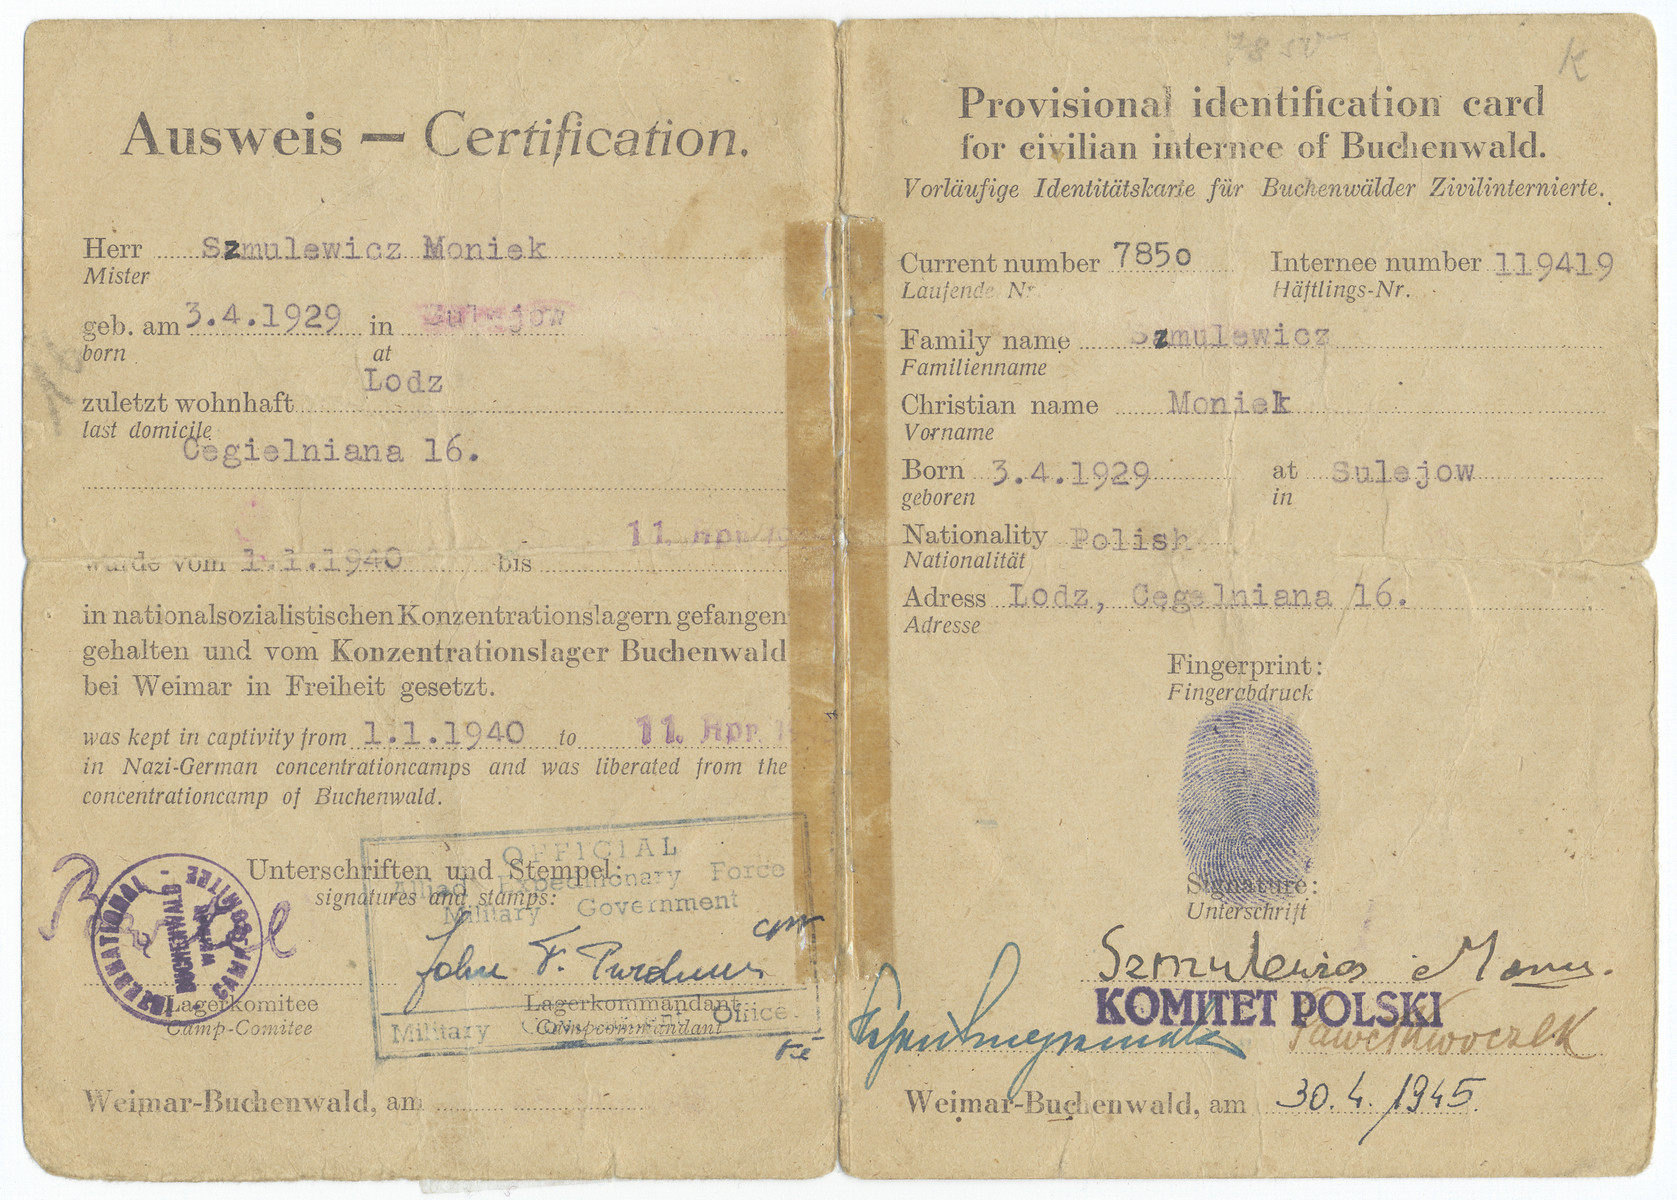 Identification card issued to Moniek Szmulewicz testifying that he had been a prisoner in the Buchenwald concentration camp and had been in Nazi prisons since January 1, 1940.  Note: Moniek gave his birthdate on this card as a year younger than his true birthdate so that he could qualify for more favorable immigration status.